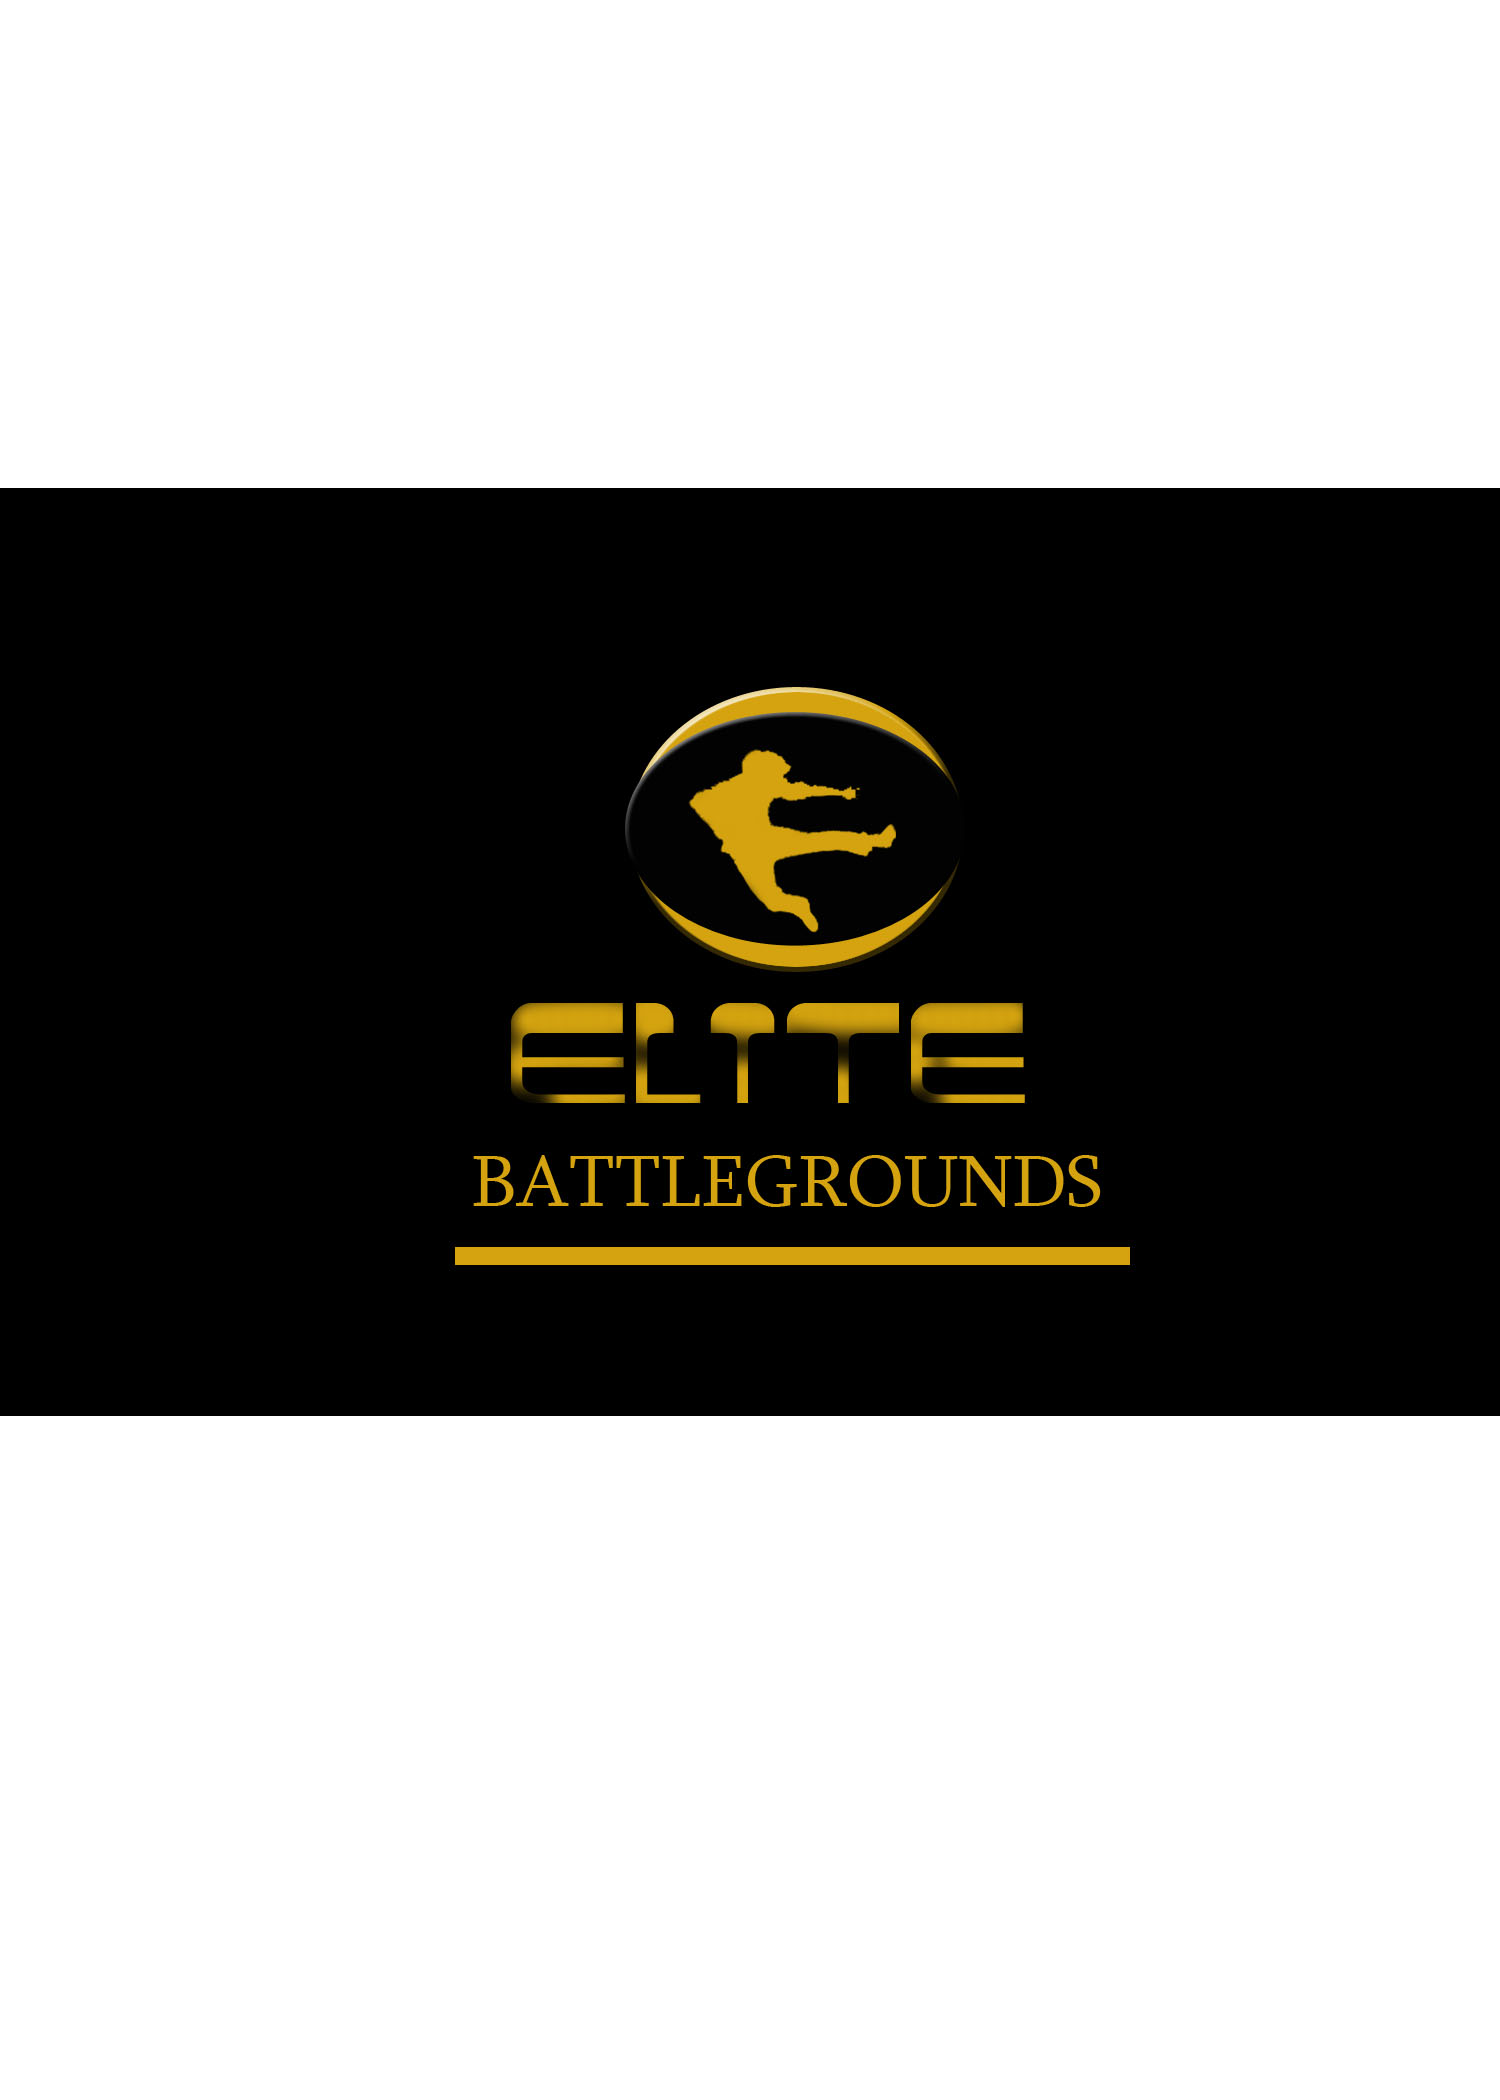 Logo Design by Mayvi Pasco - Entry No. 103 in the Logo Design Contest Creative Logo Design for Elite Battlegrounds.